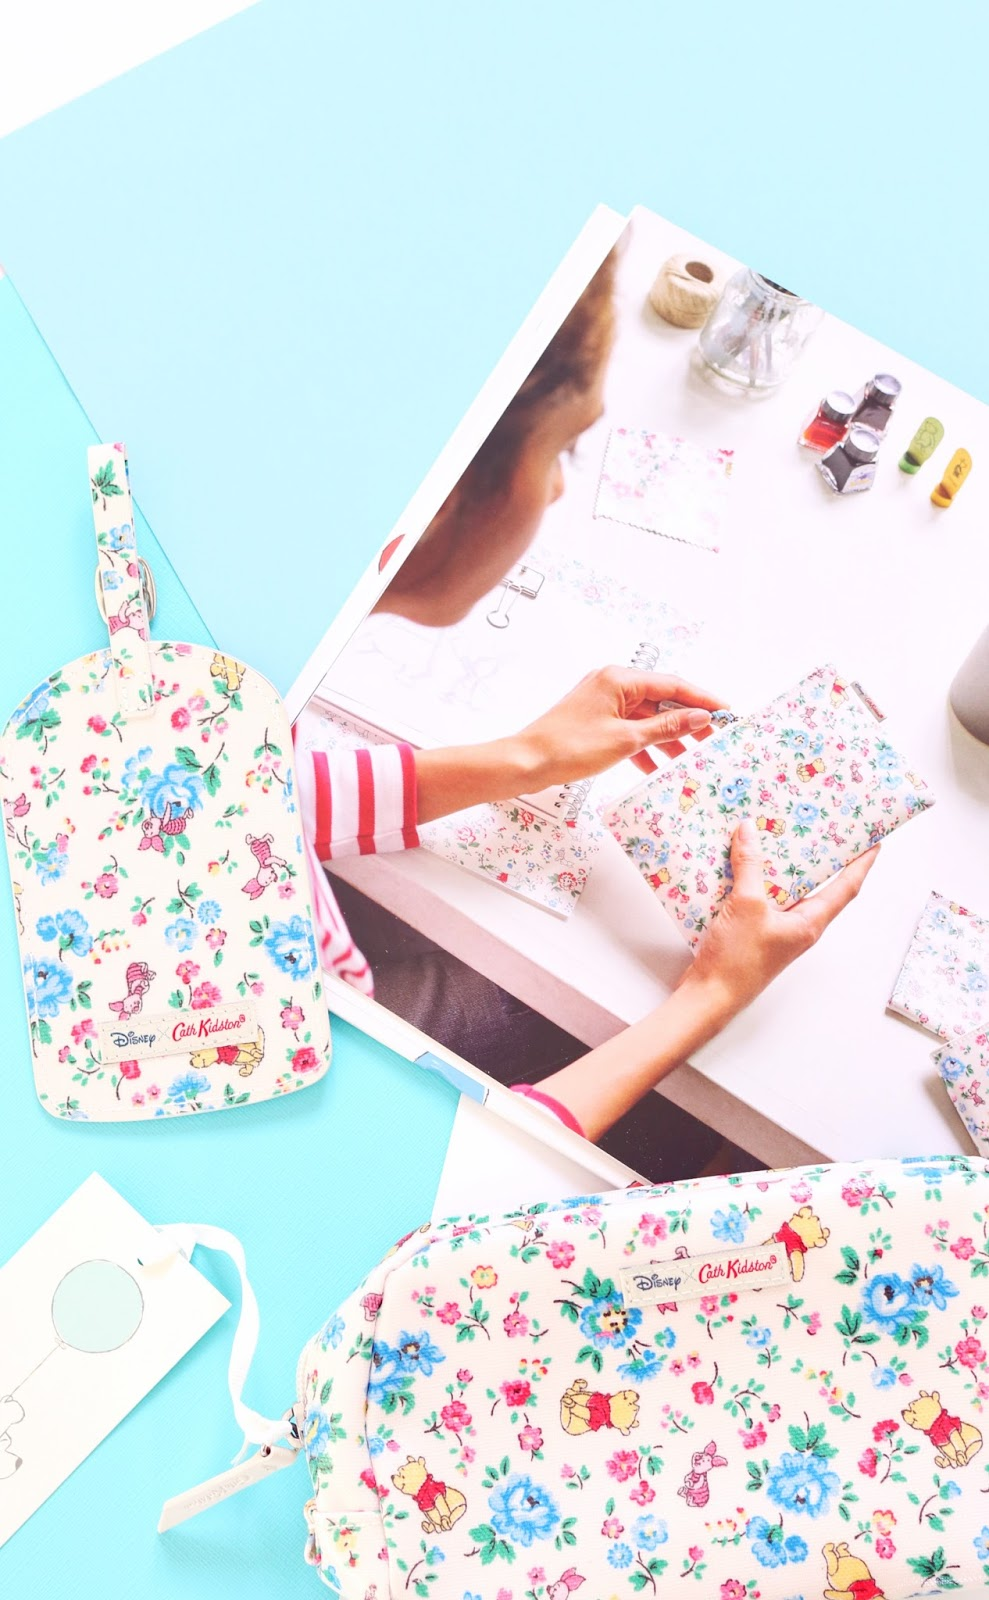 Disney x Cath Kidston Collection